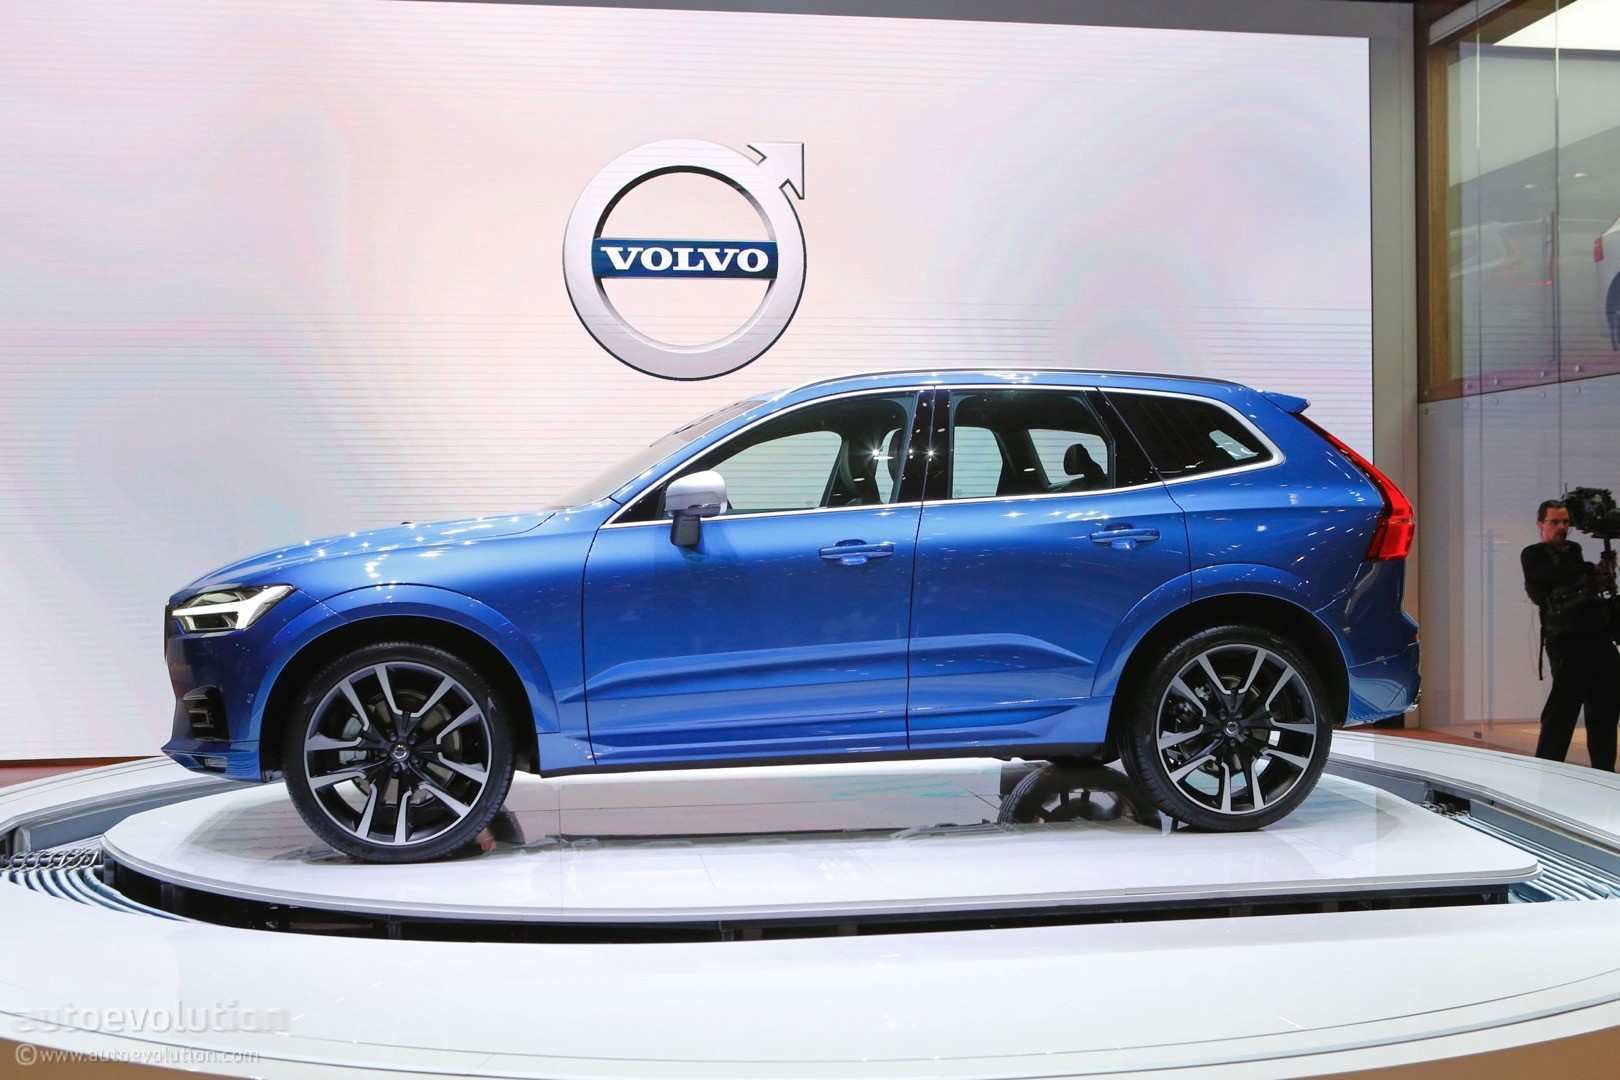 36 All New Best Volvo Cars 2019 Models Specs Overview for Best Volvo Cars 2019 Models Specs